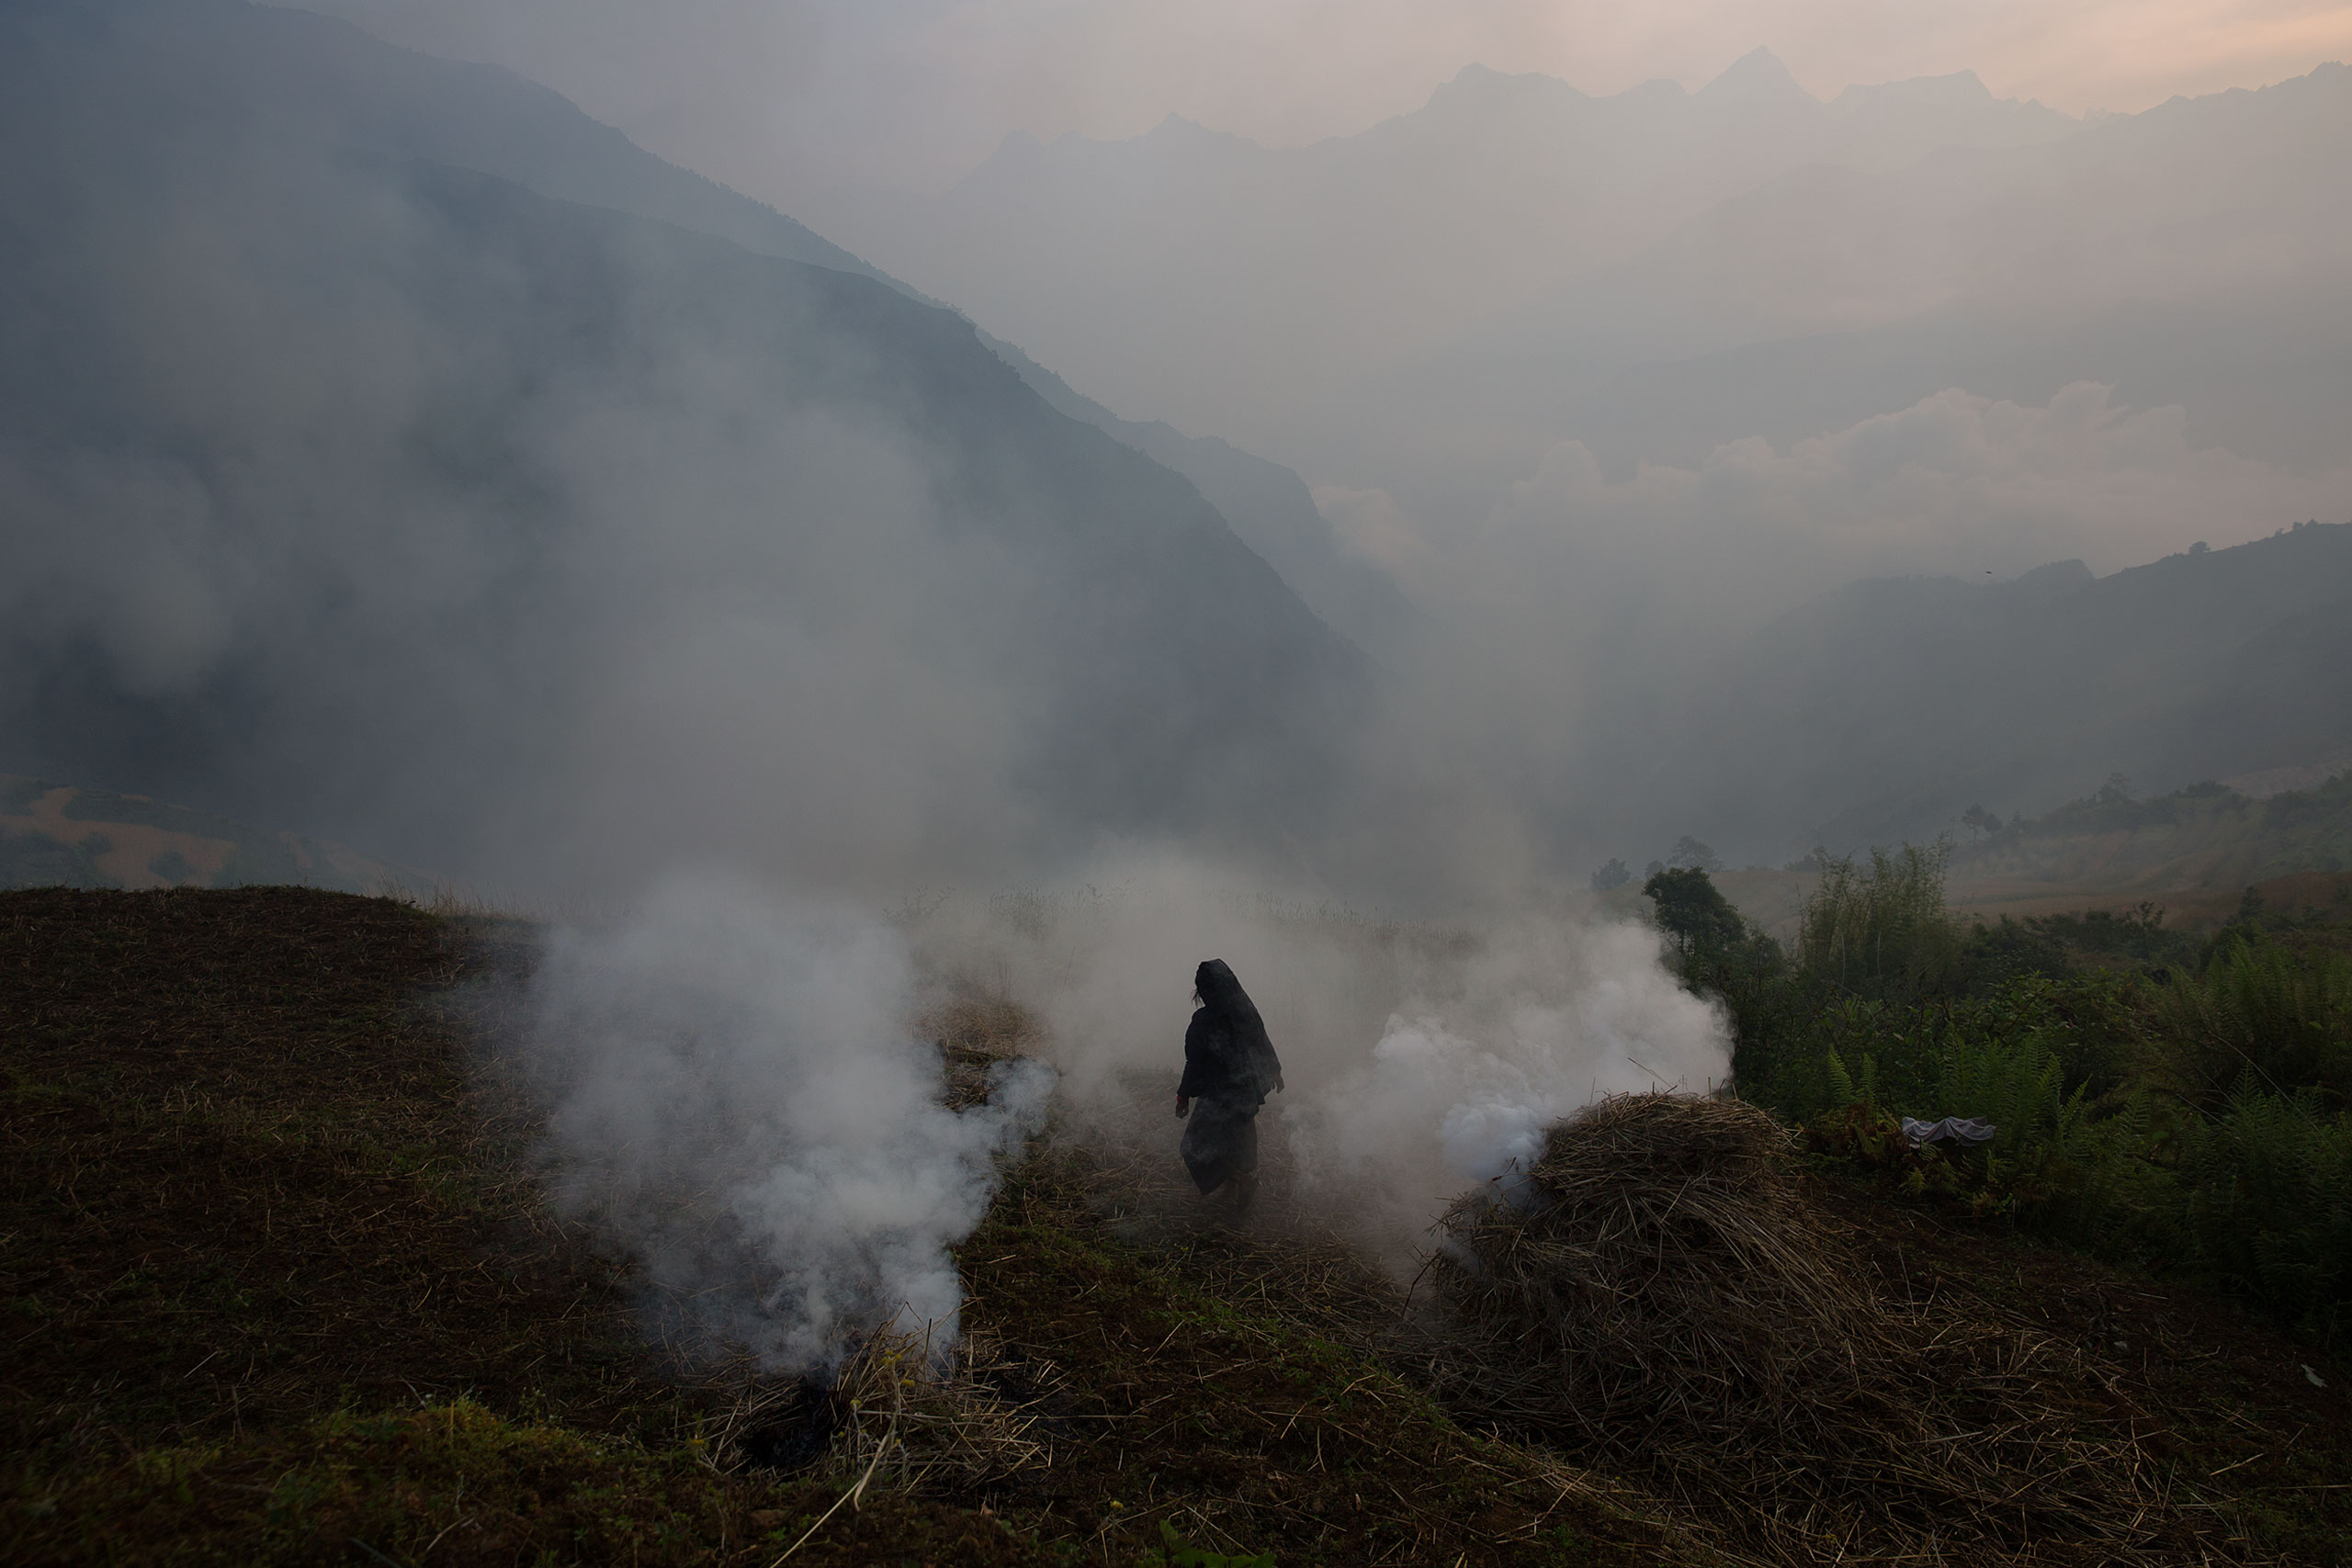 A woman walks in the remote village of Gumda in Ghorka district, Nepal, May 8, 2015.